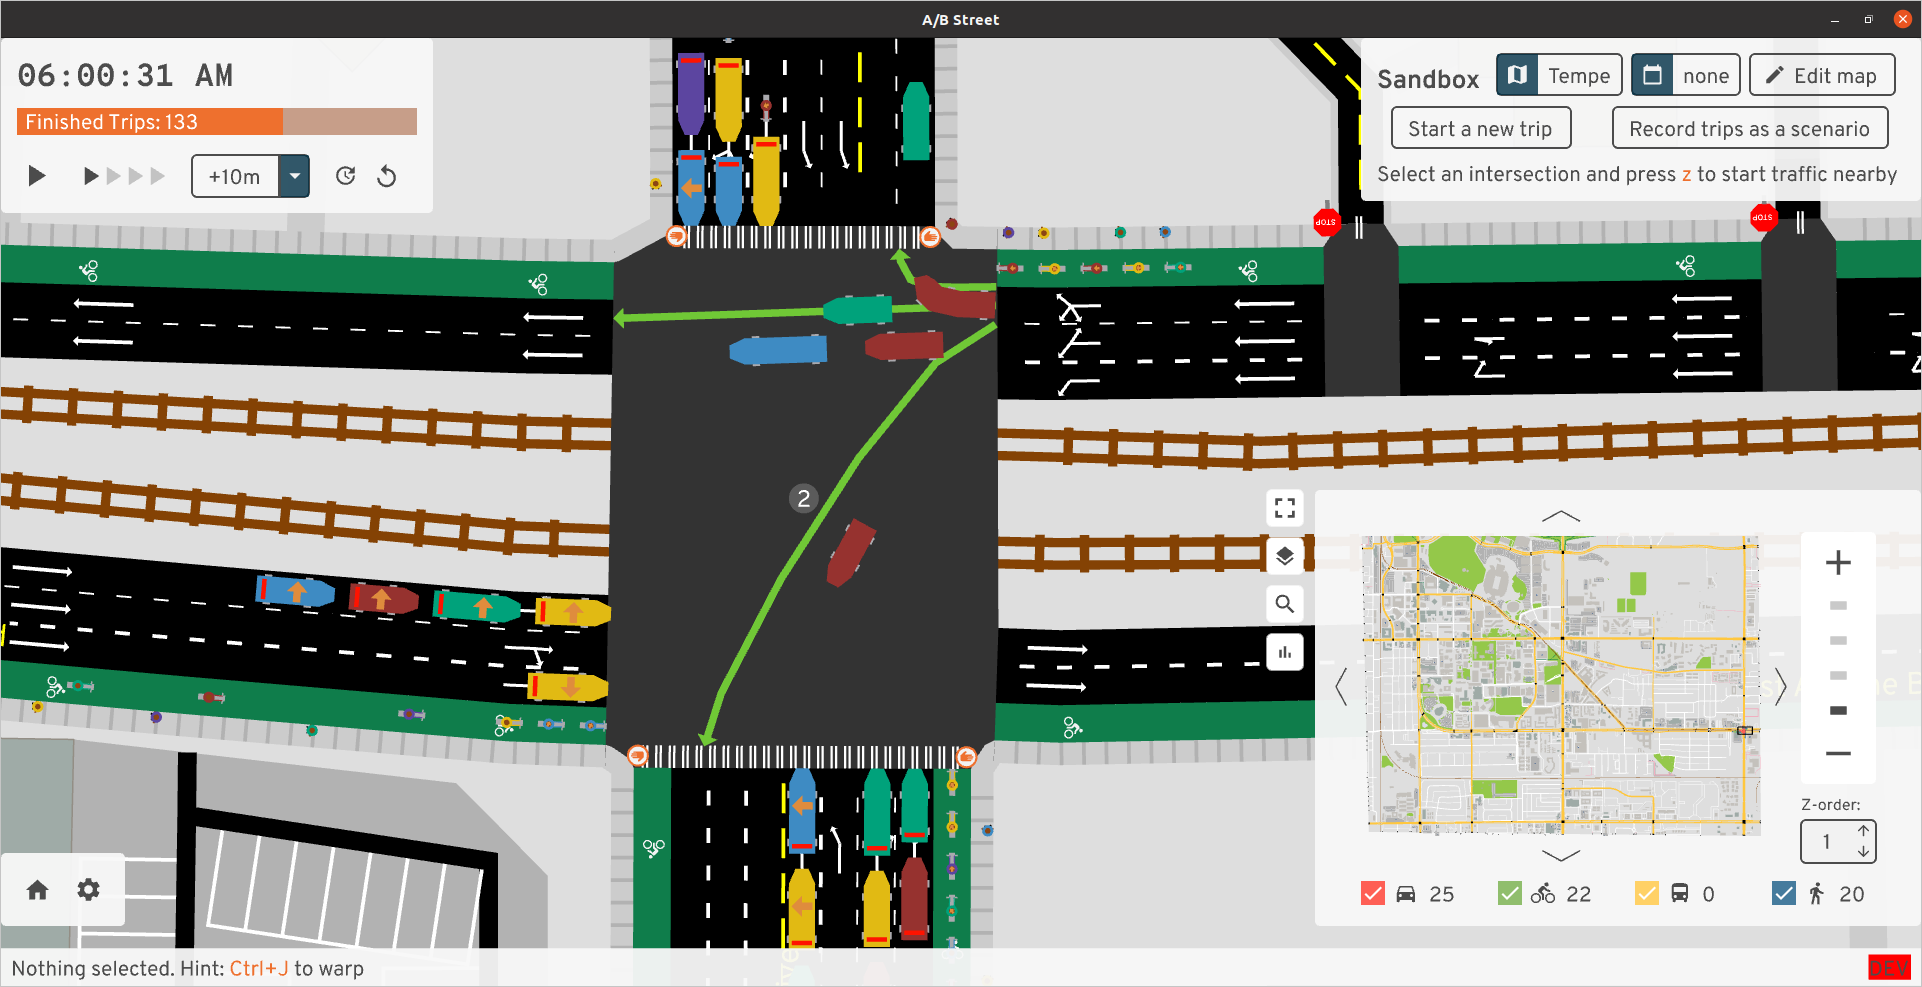 Consolidated intersections in A/B Street